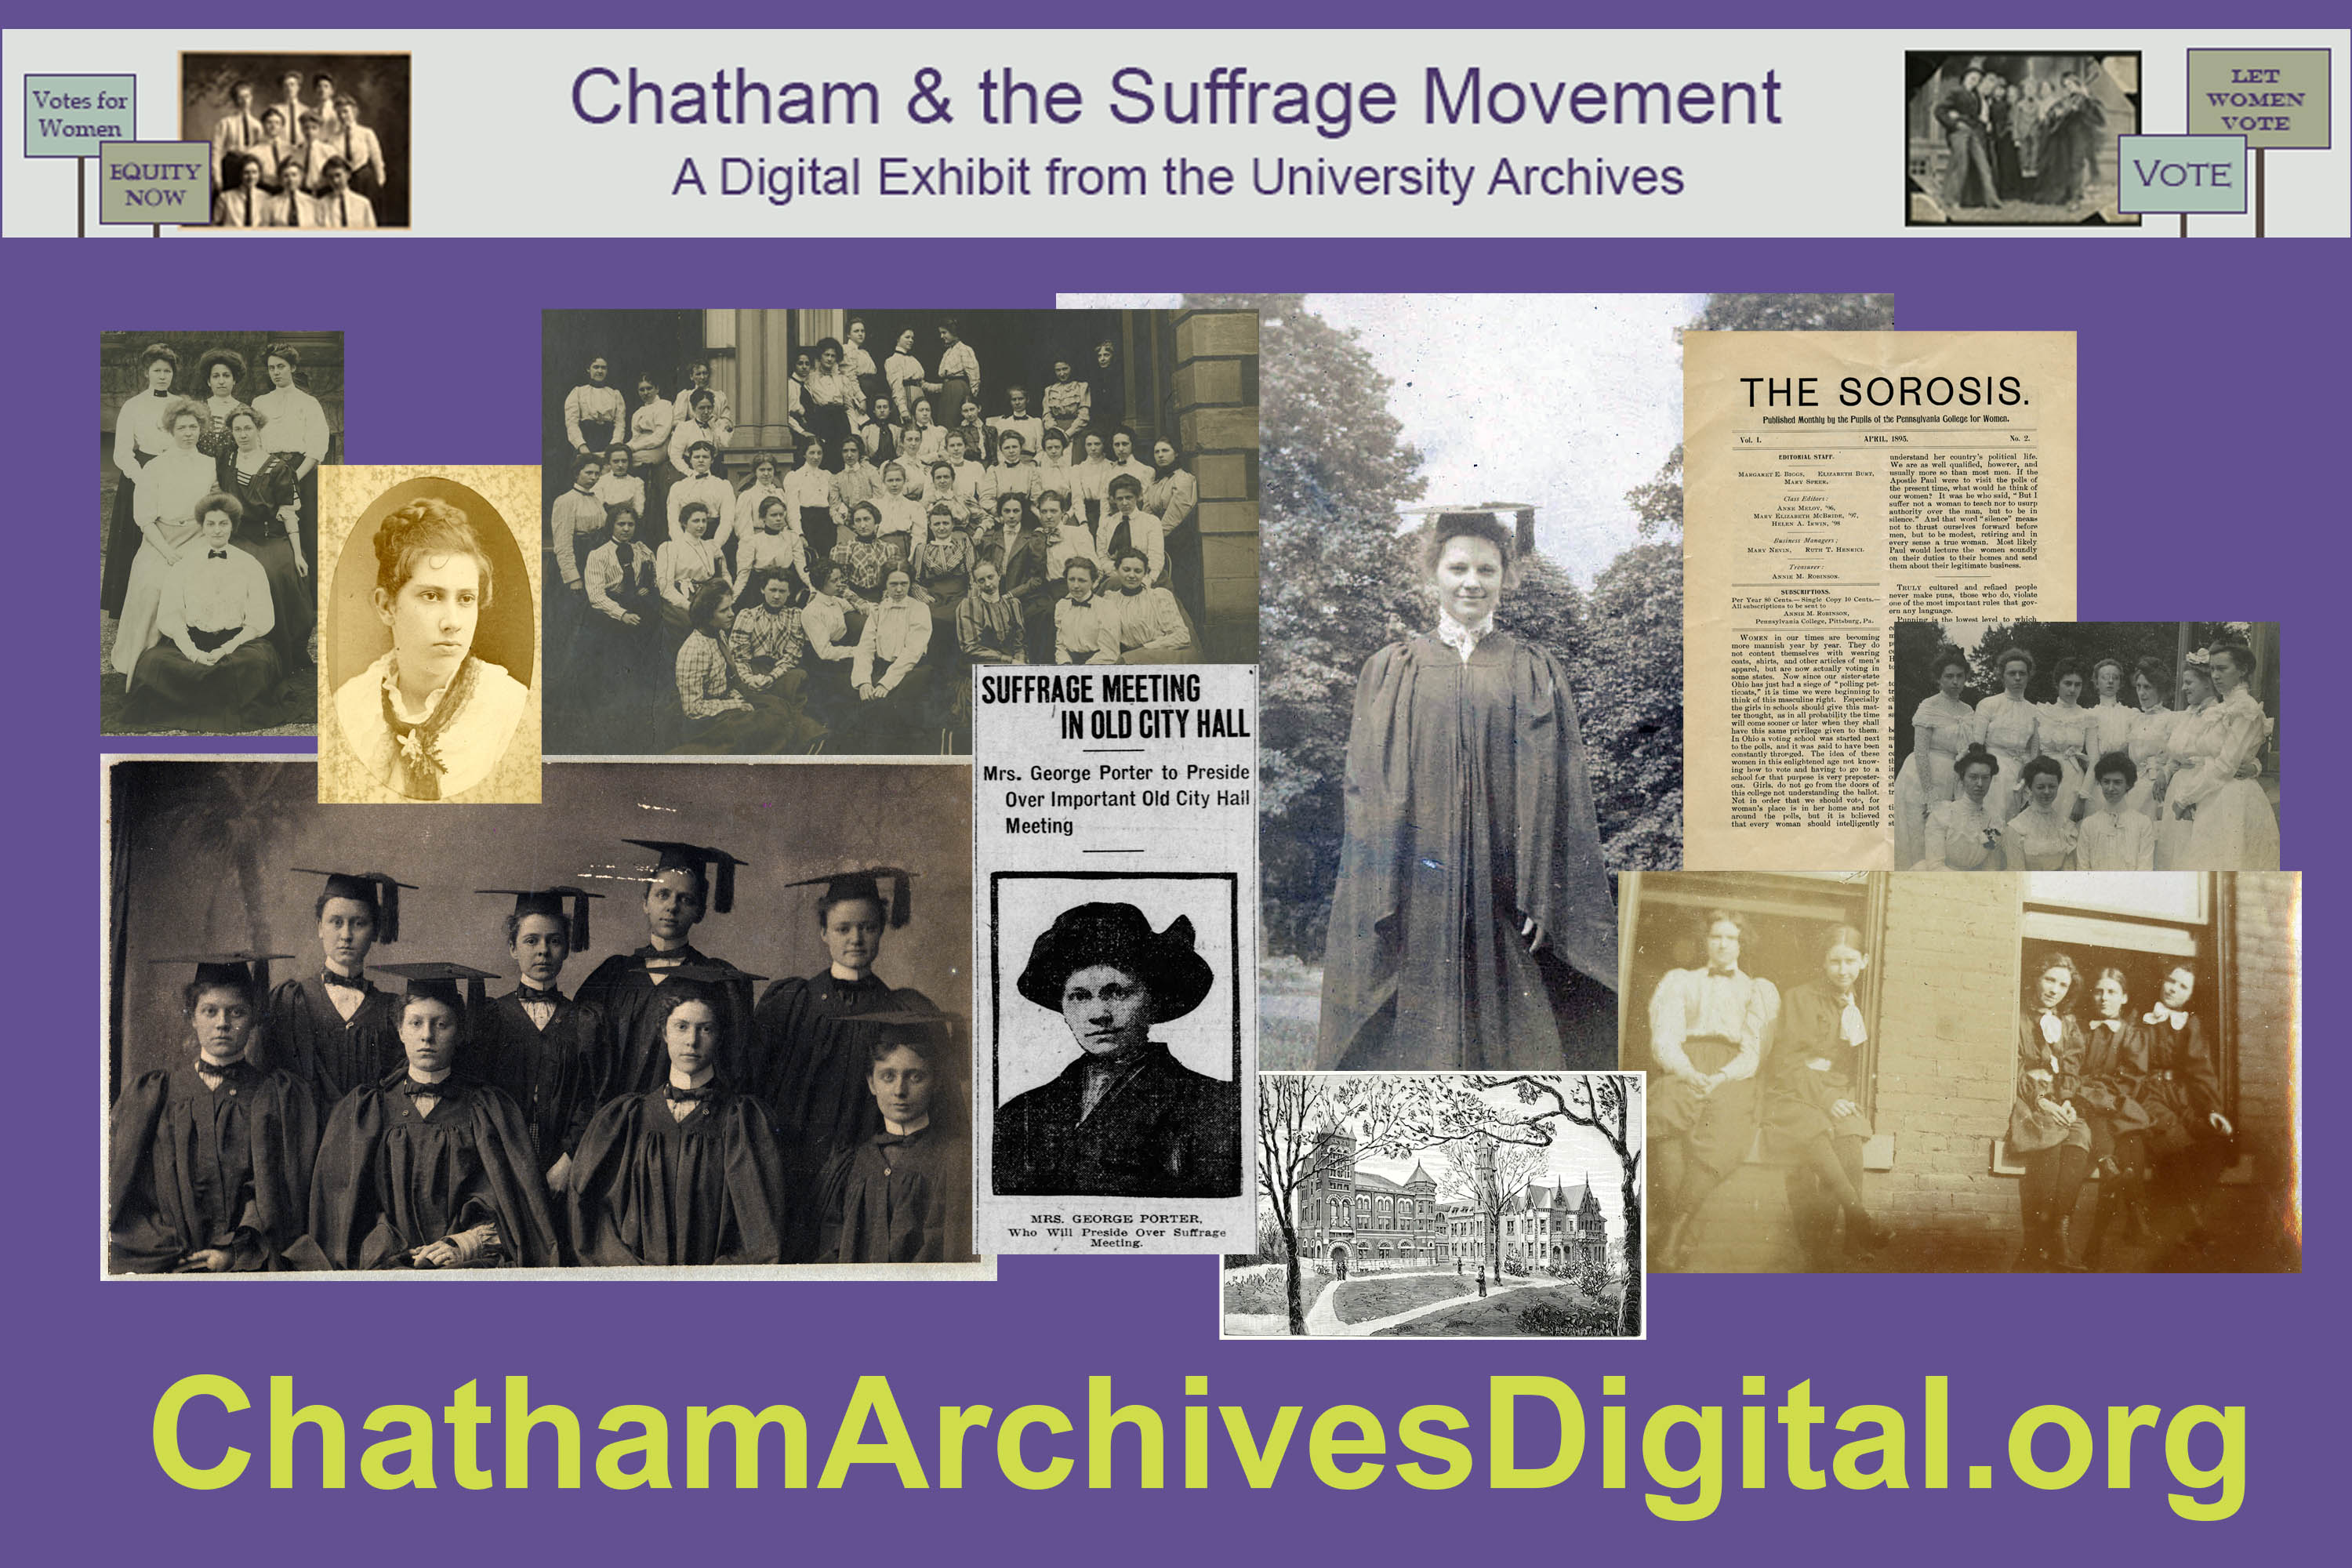 Visit the Chatham Archives Digital site